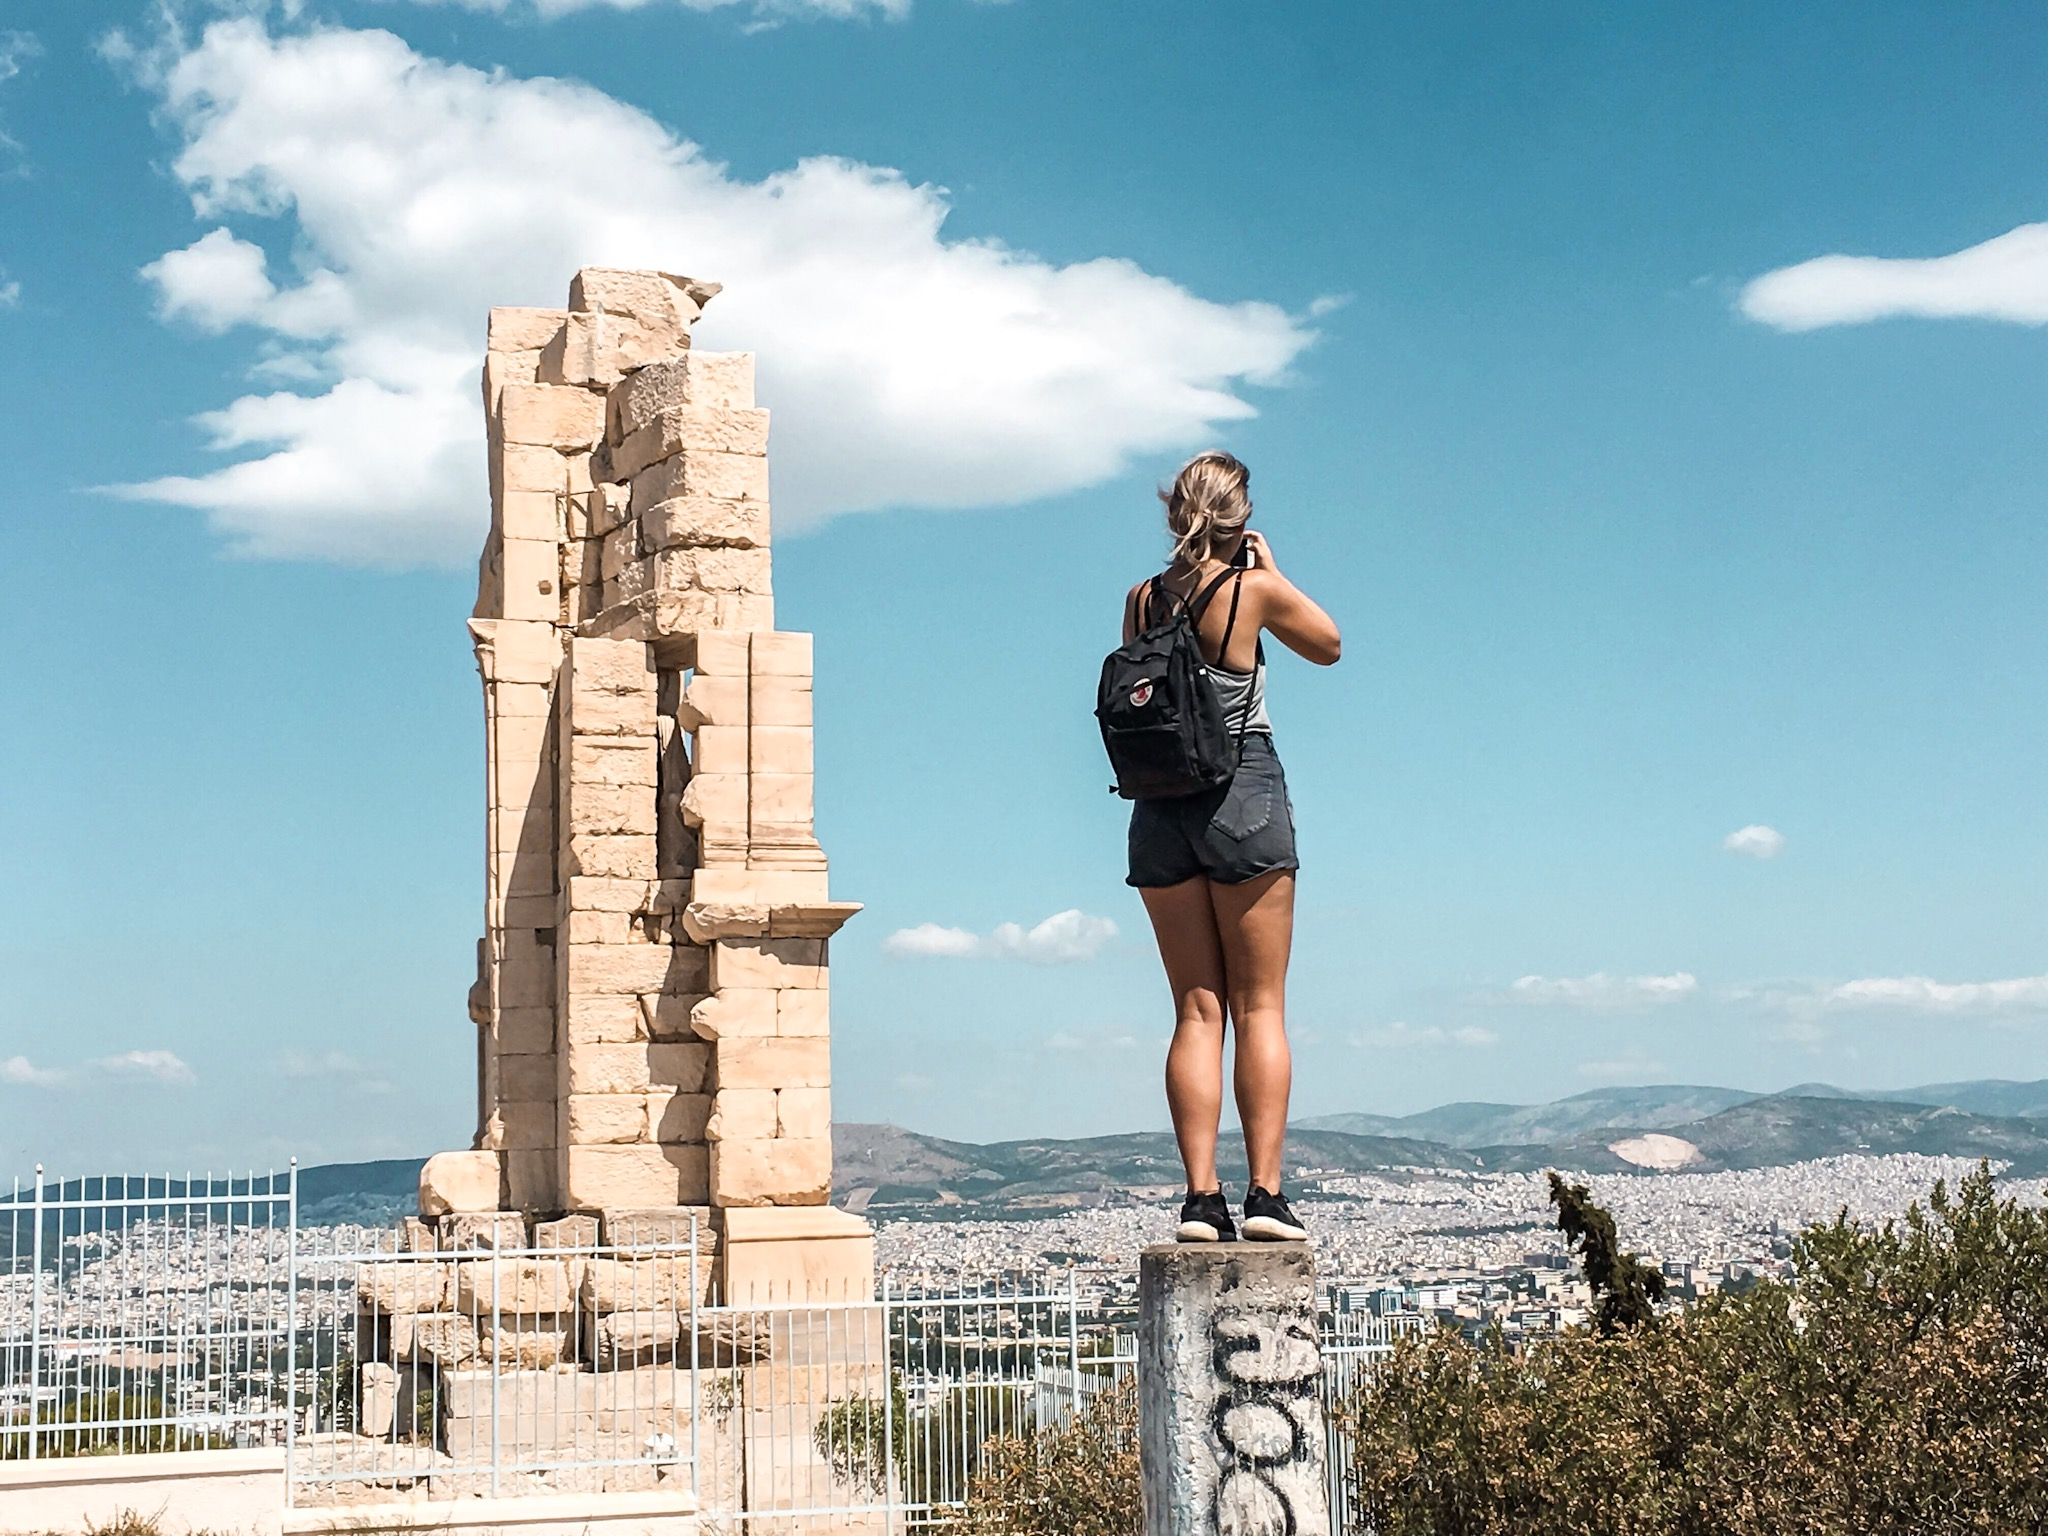 Capturing the sights of Europe, like the ancient city of Athens